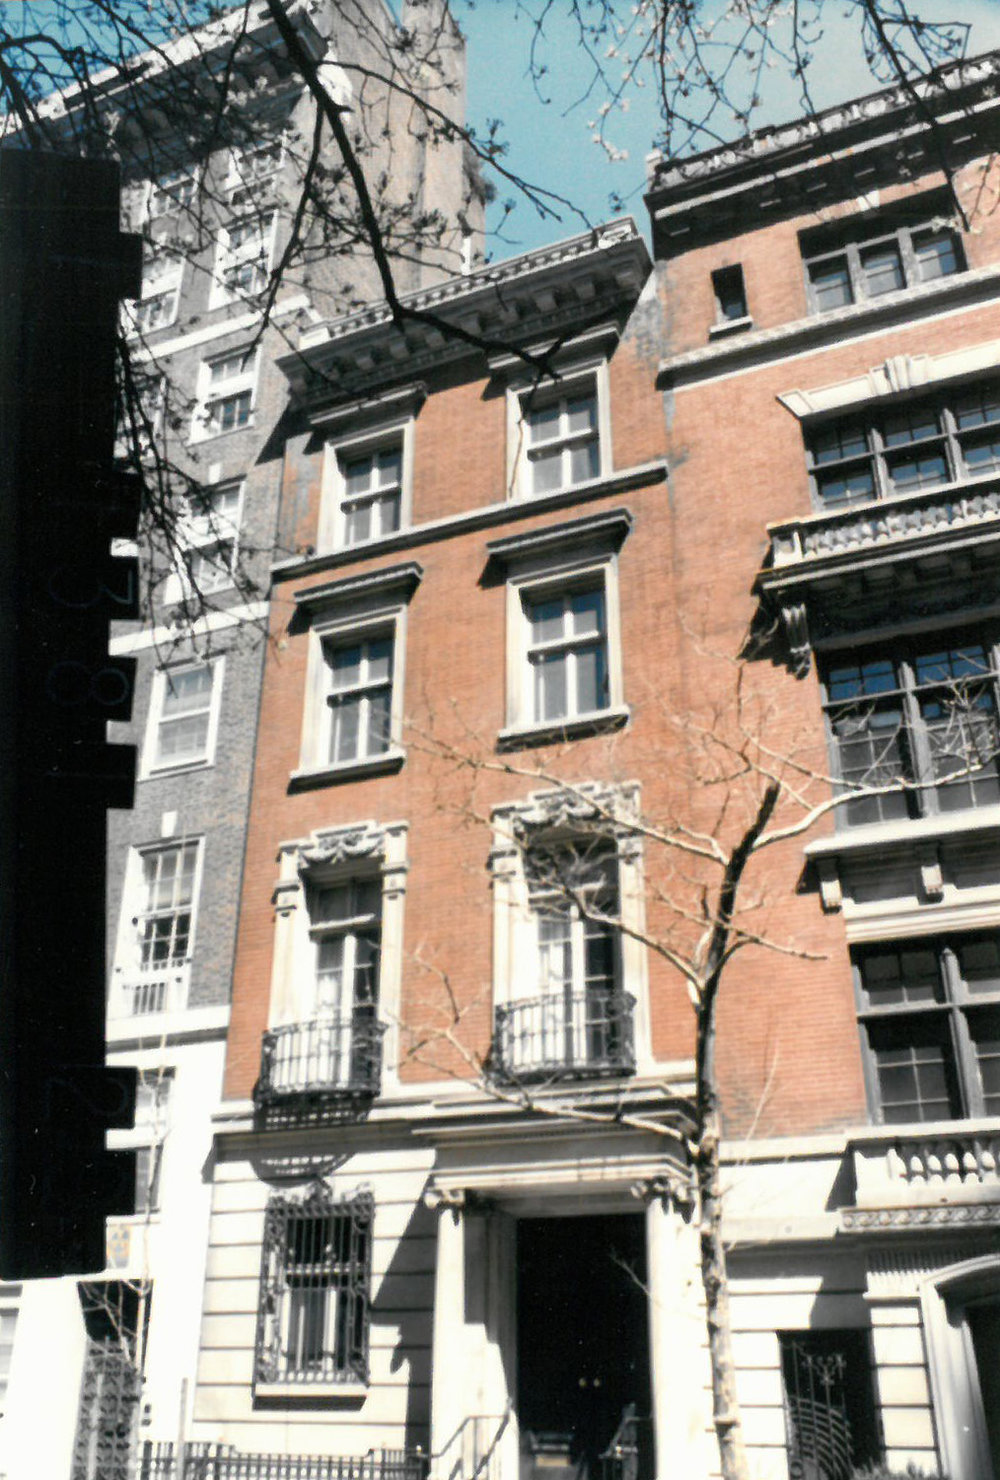 Warhol's townhouse at 57 E. 66th Street in the mid-1980s tax photo at right. Department of Finance Collection, NYC Municipal Archives.